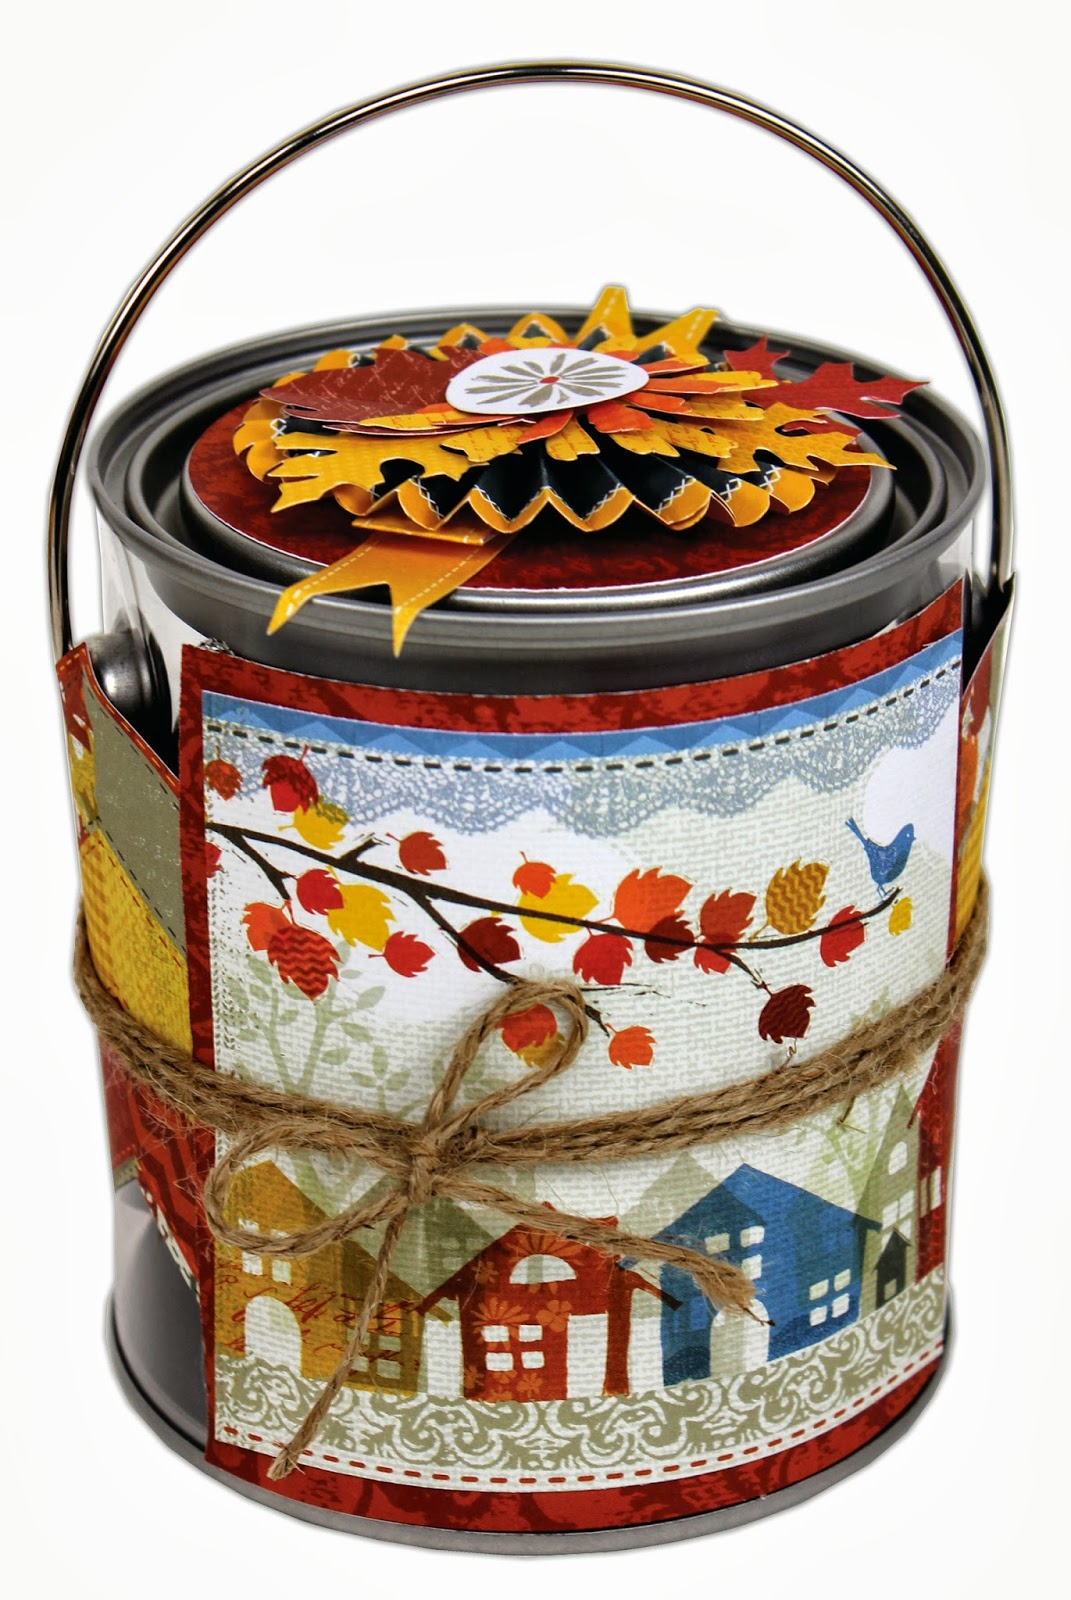 crafts direct blog project ideas paint pails